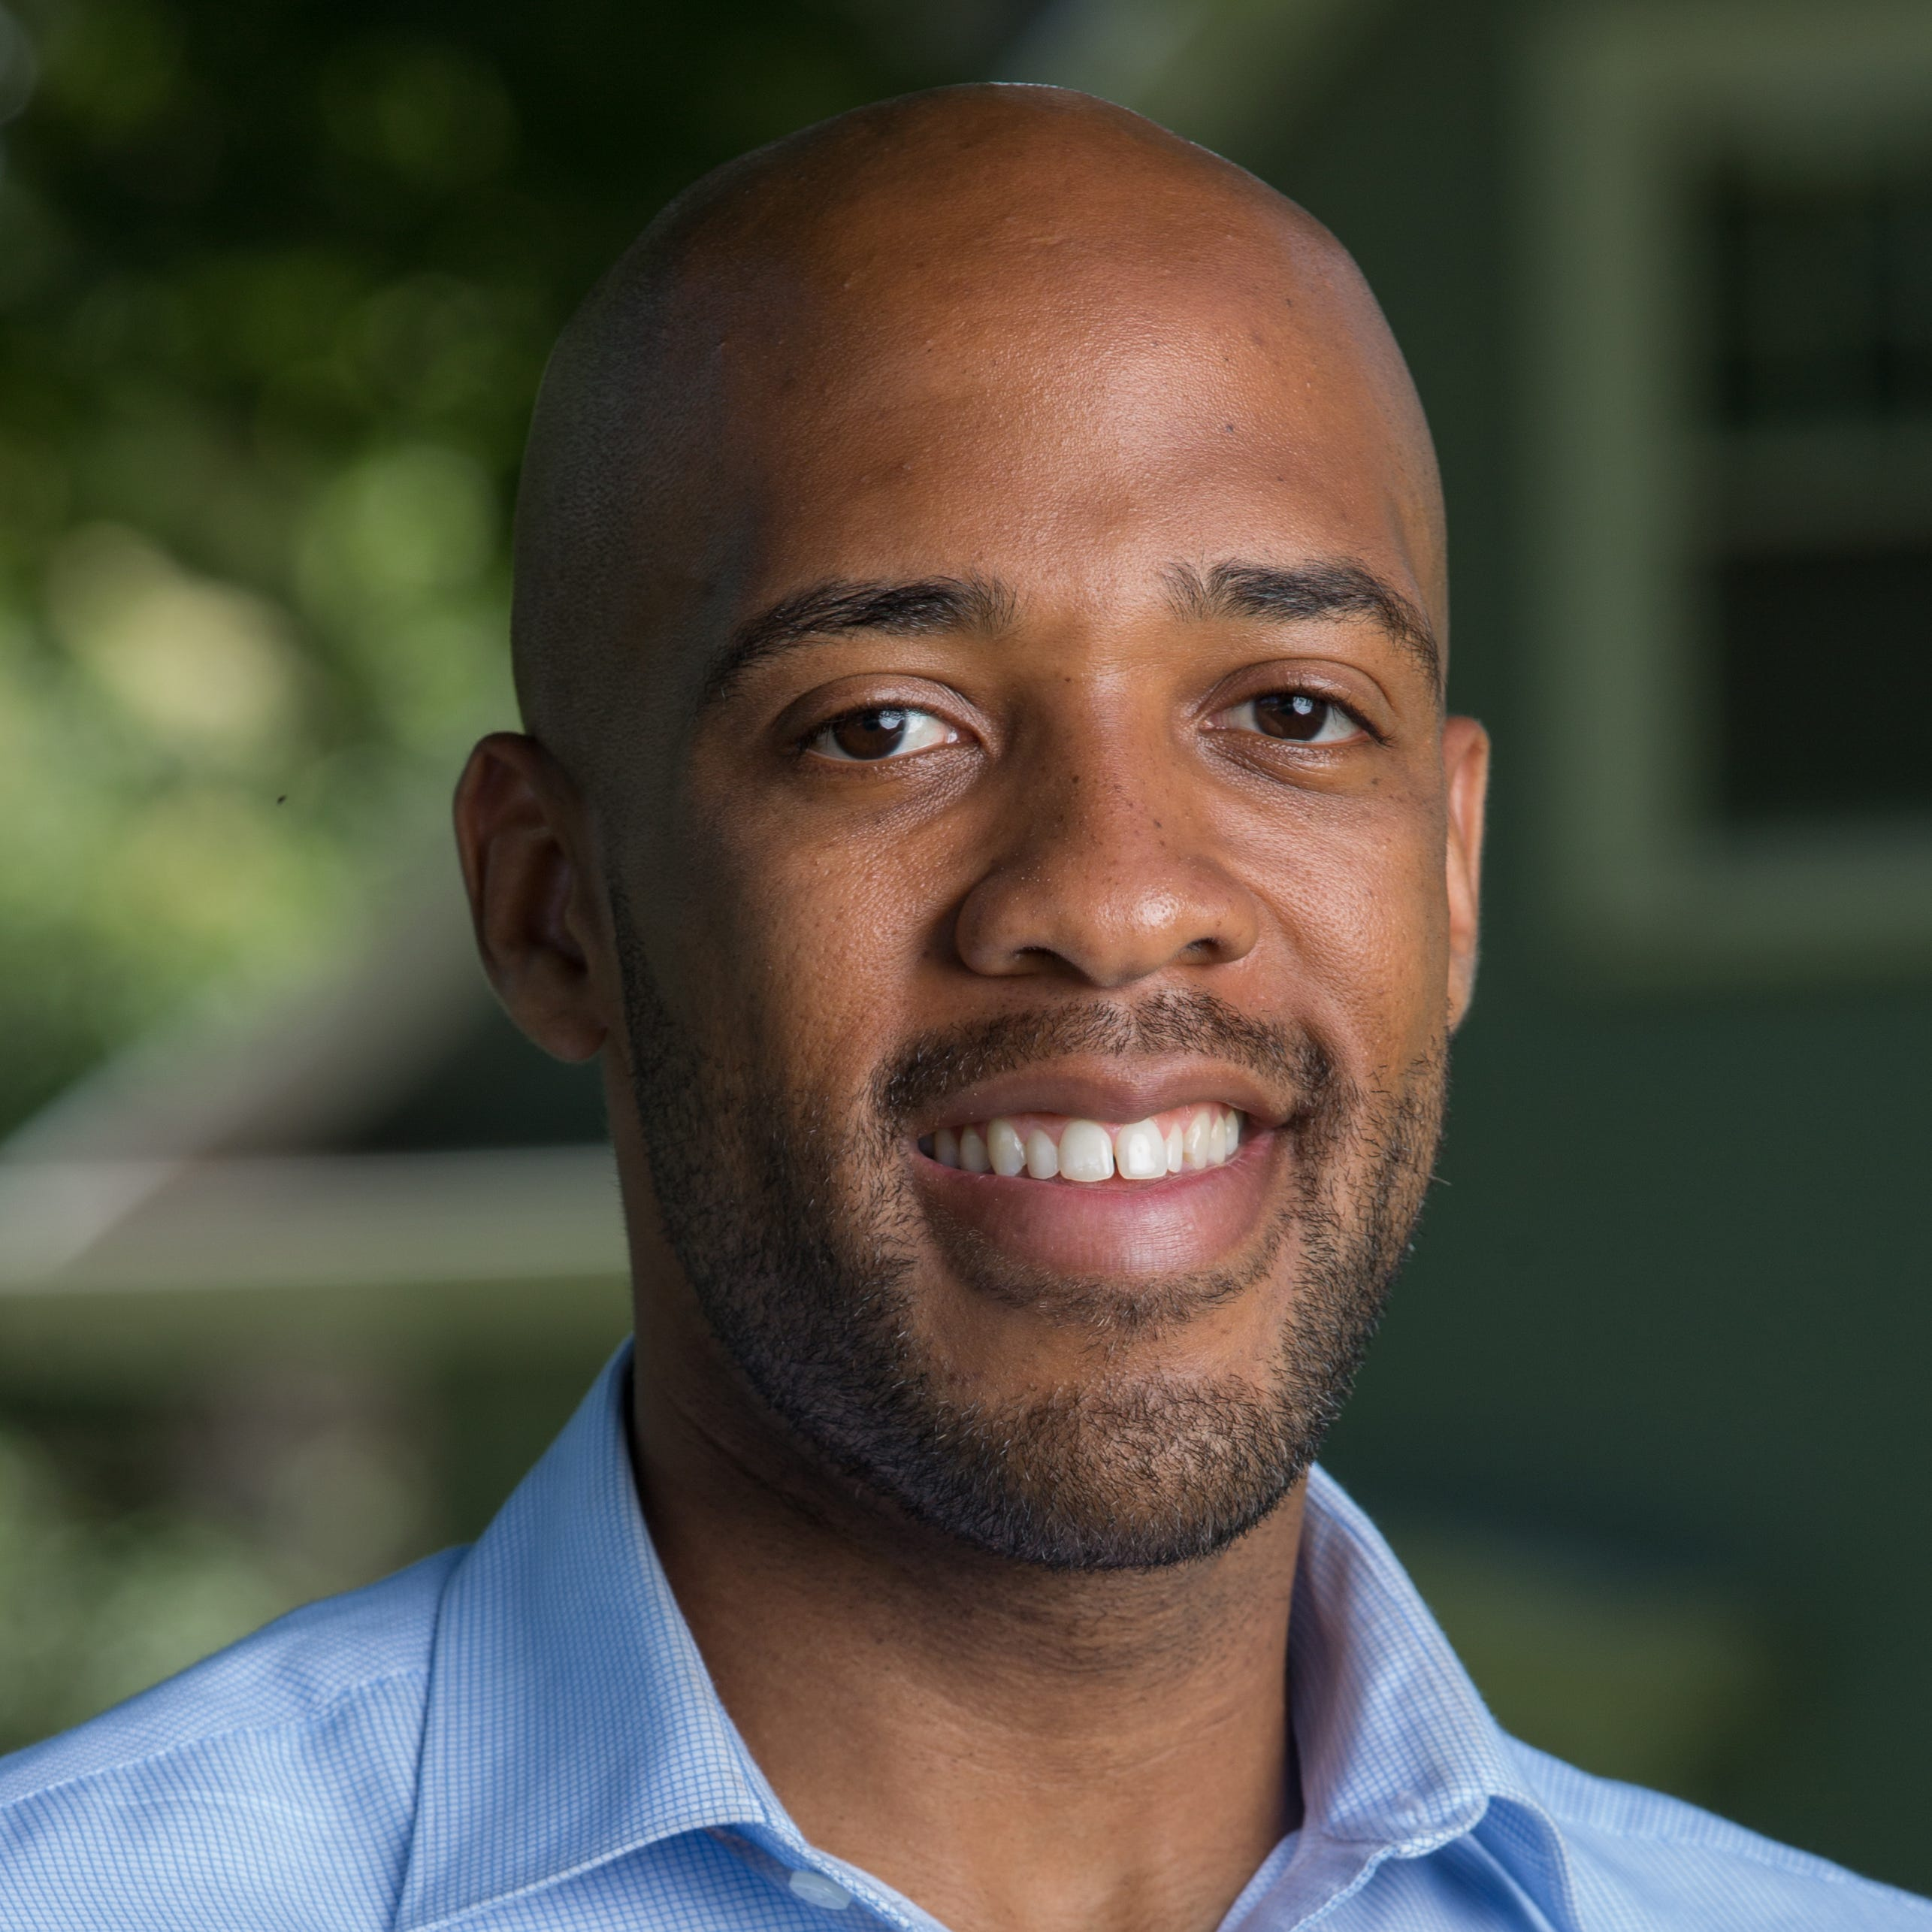 Media reports Wisconsin lieutenant governor candidate Mandela Barnes is dead, white and not on the ballot